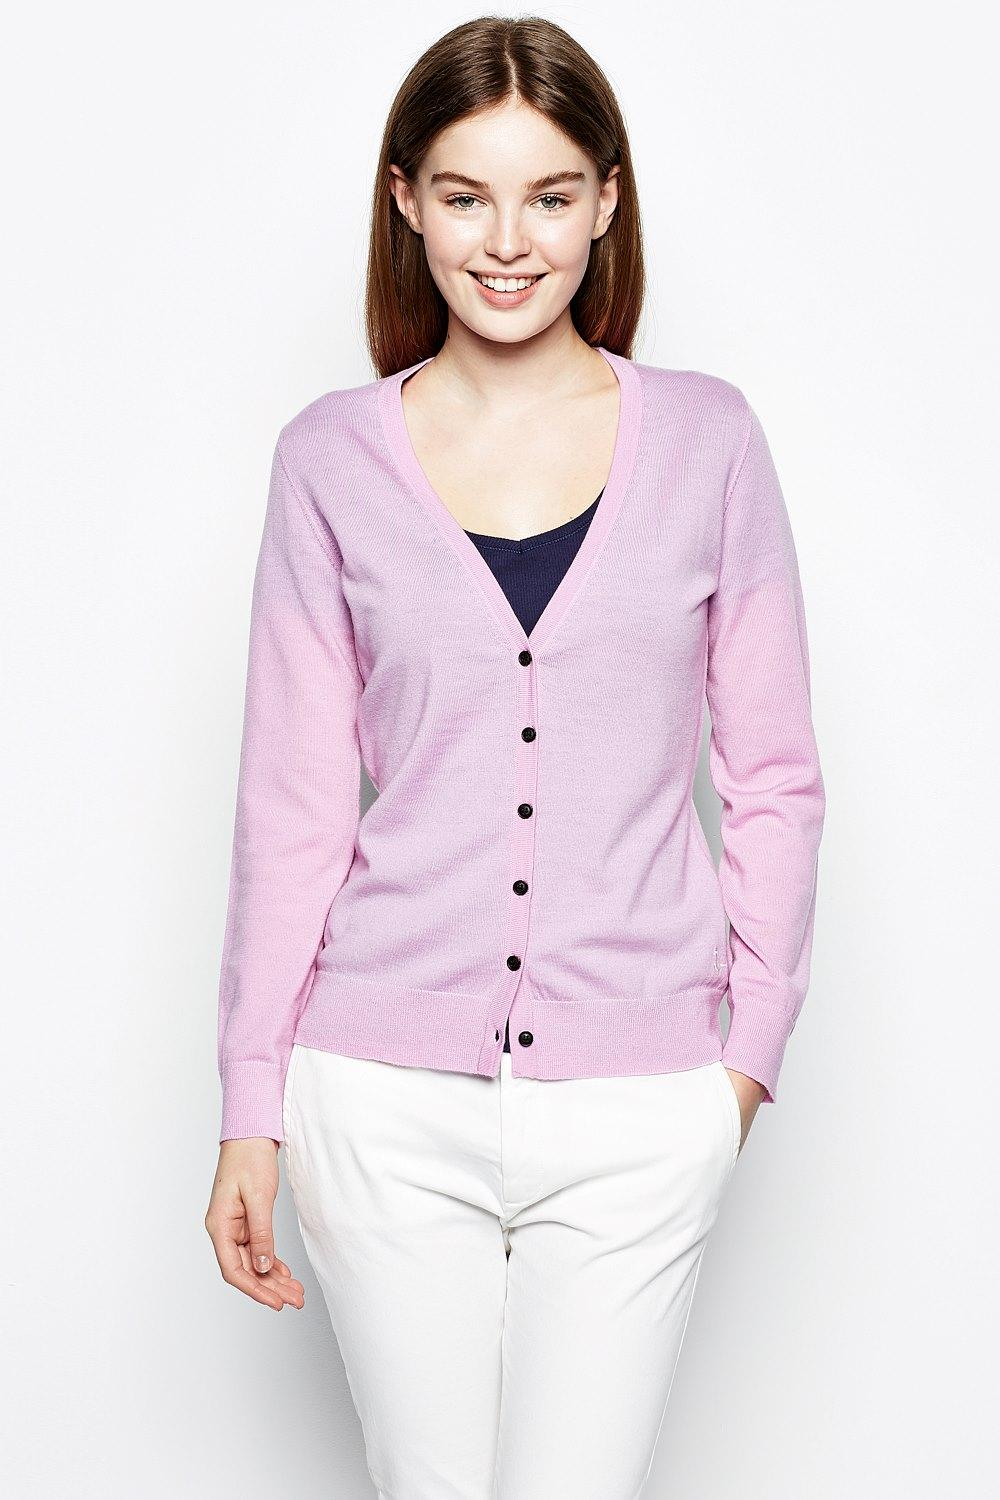 Up to 50% OffSelect Styles @ Jack Wills